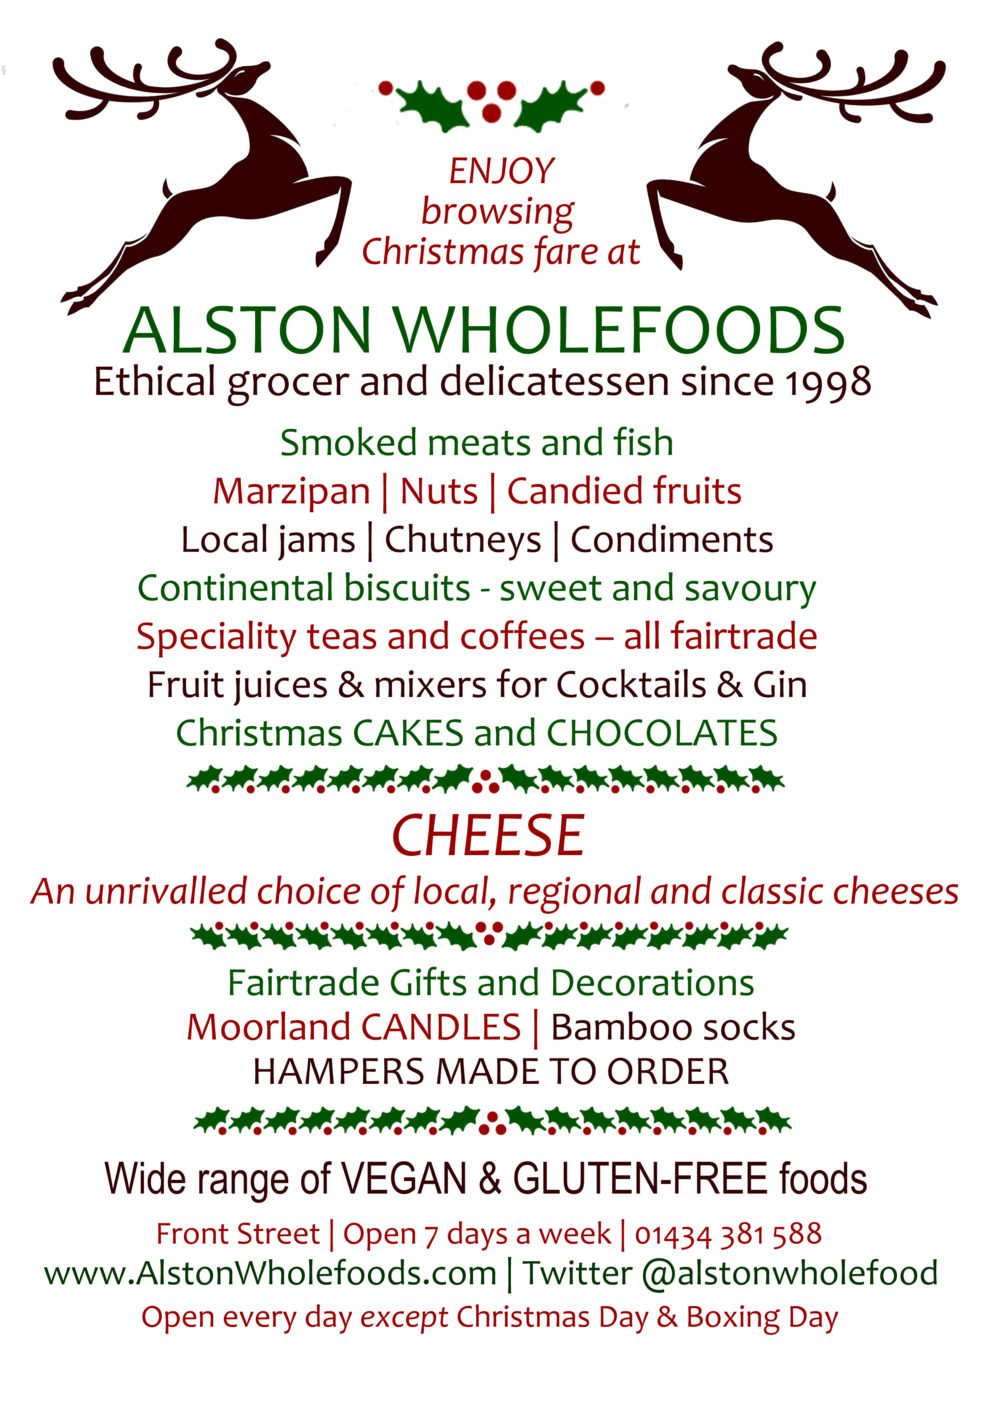 Browse Christmas fare at Alston Wholefoods